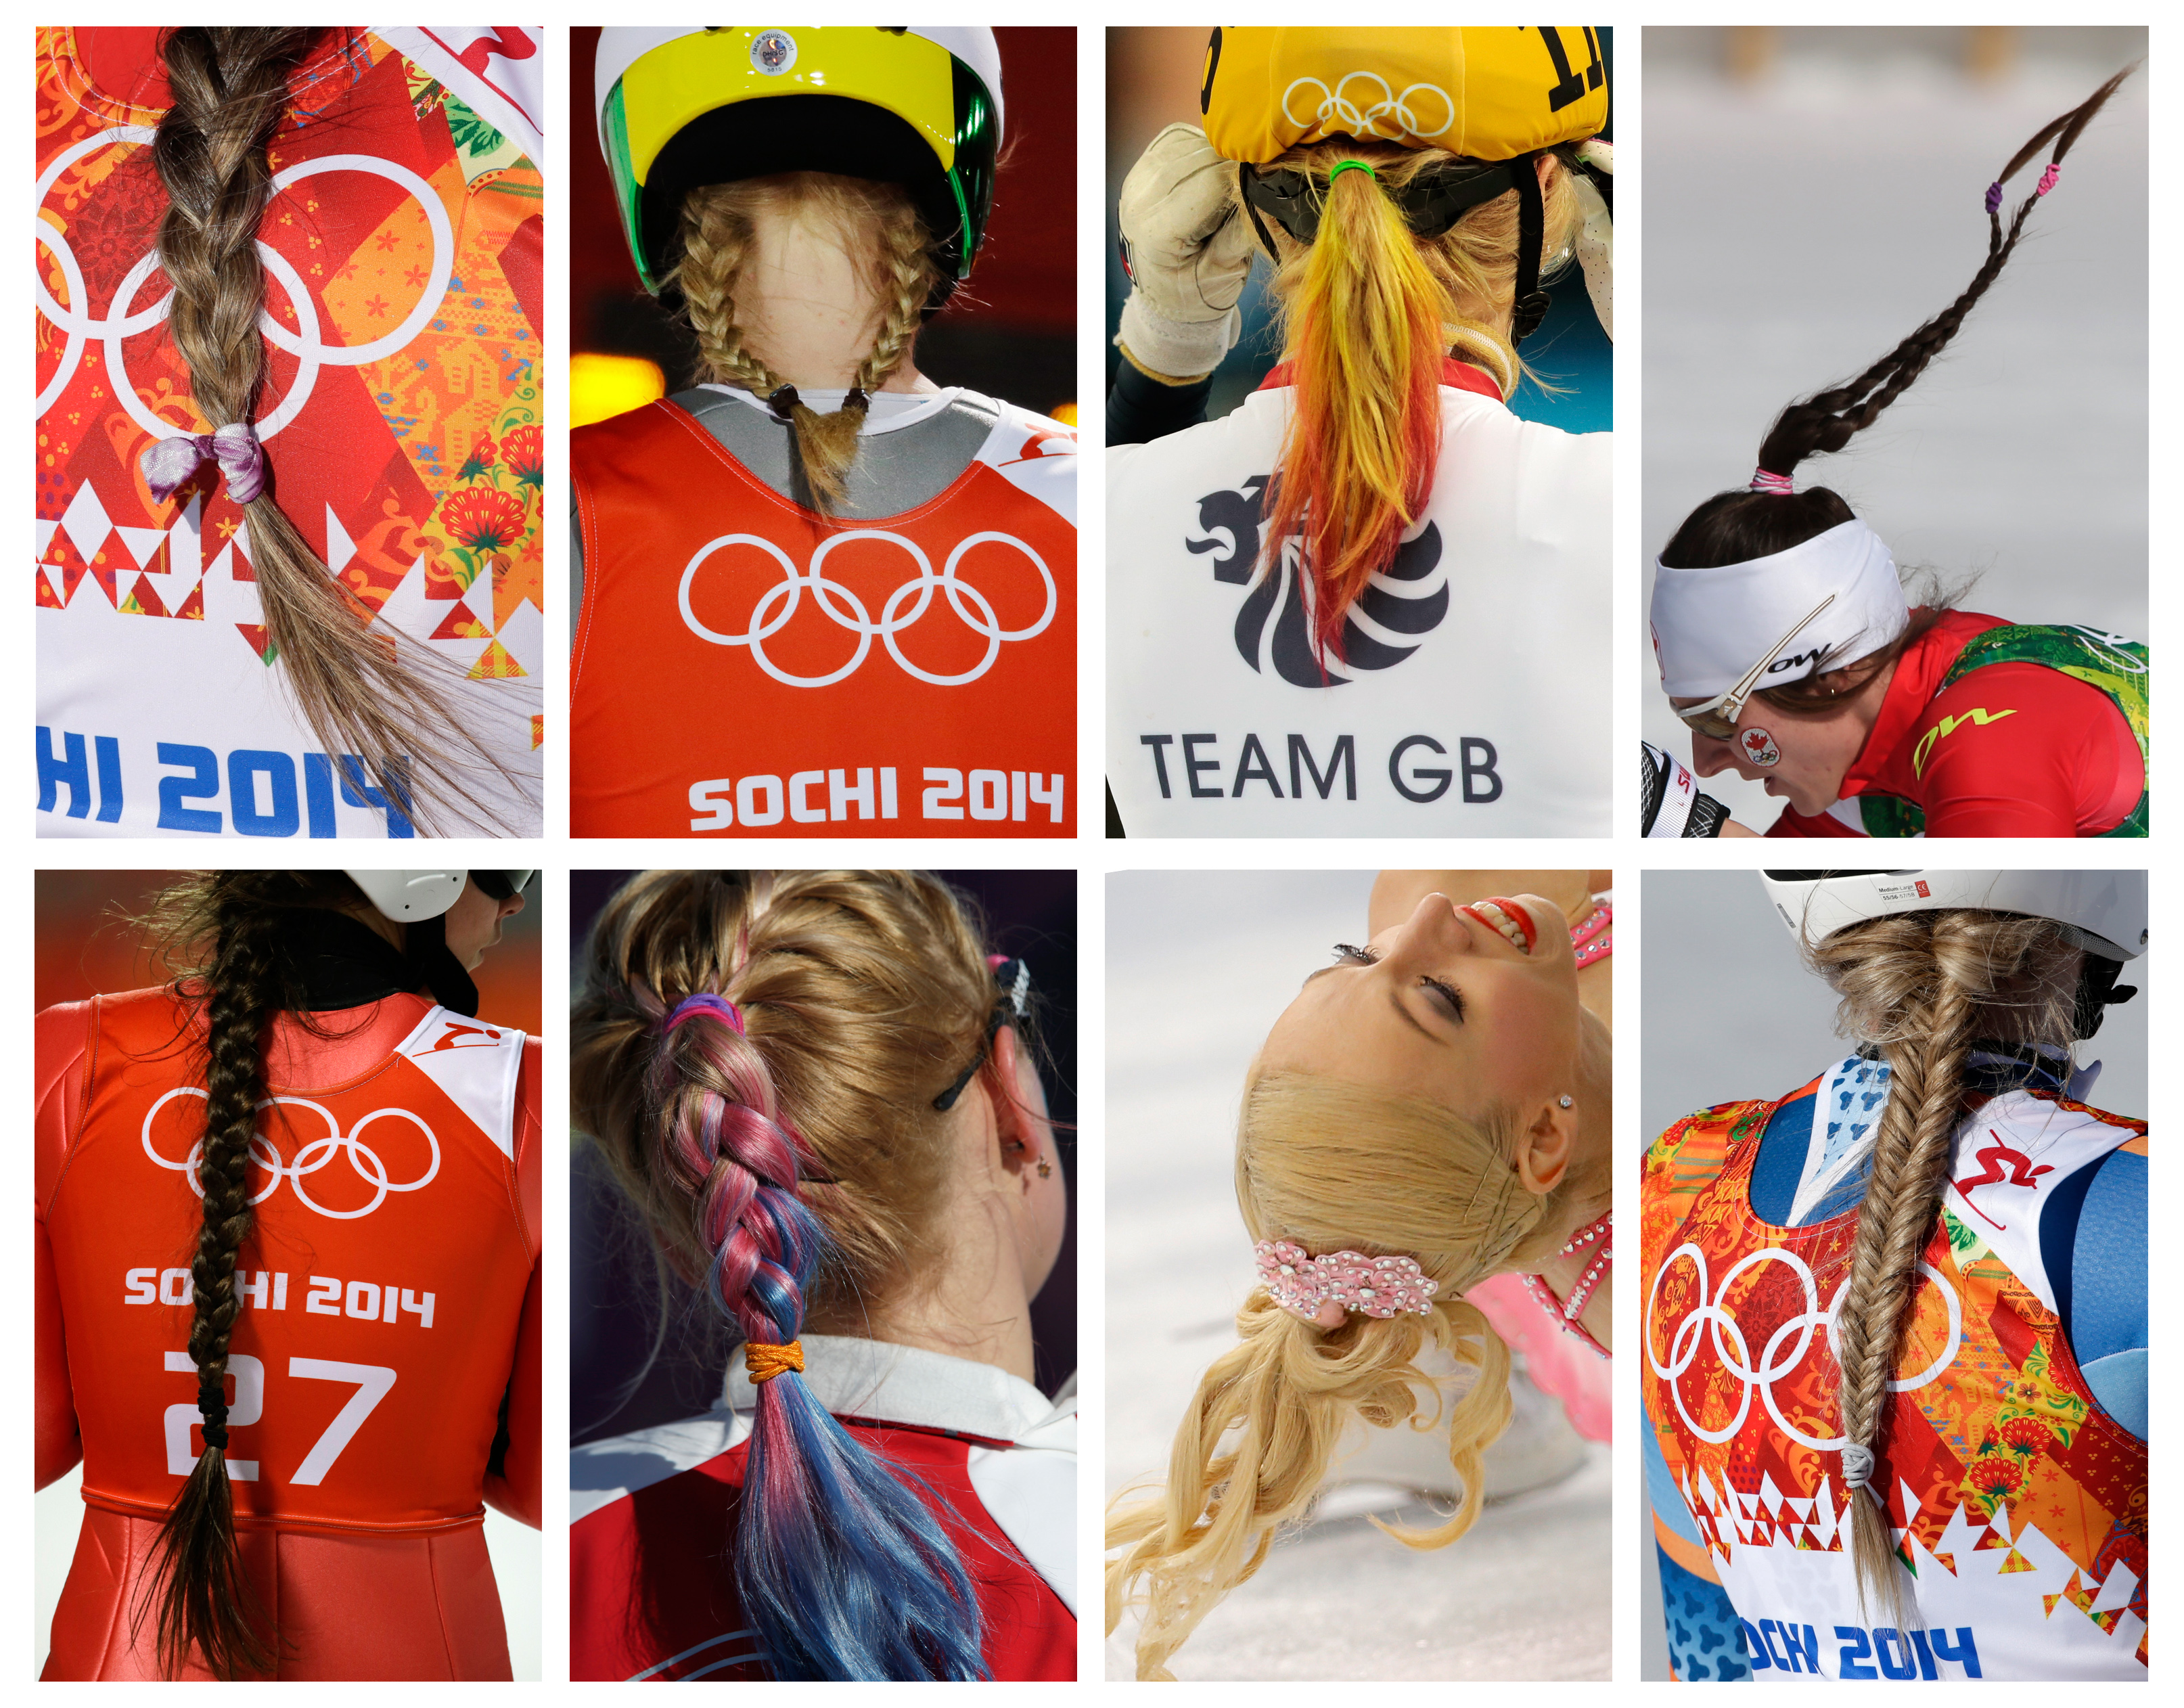 This combination photo shows various hairstyles worn by Olympic athletes at the 2014 Winter Olympics in Sochi, Russia. Top row, from left; Canada's Marie-Pier Prefontaine, women's super-G; Norway's Gyda Enger, normal hill ski jumping; Elise Christie of Britain, 500m short track speedskating; Canada's Daria Gaiazova,  4x5K cross-country relay; bottom row, Russia's Irina Avvakumova, normal hill ski jumping; United States' Jessica Diggins, 4x5K cross-country relay; Stacey Kemp of Britain, pairs short program figure skating; and Norway's Ragnhild Mowinckel, downhill. (AP Photo)